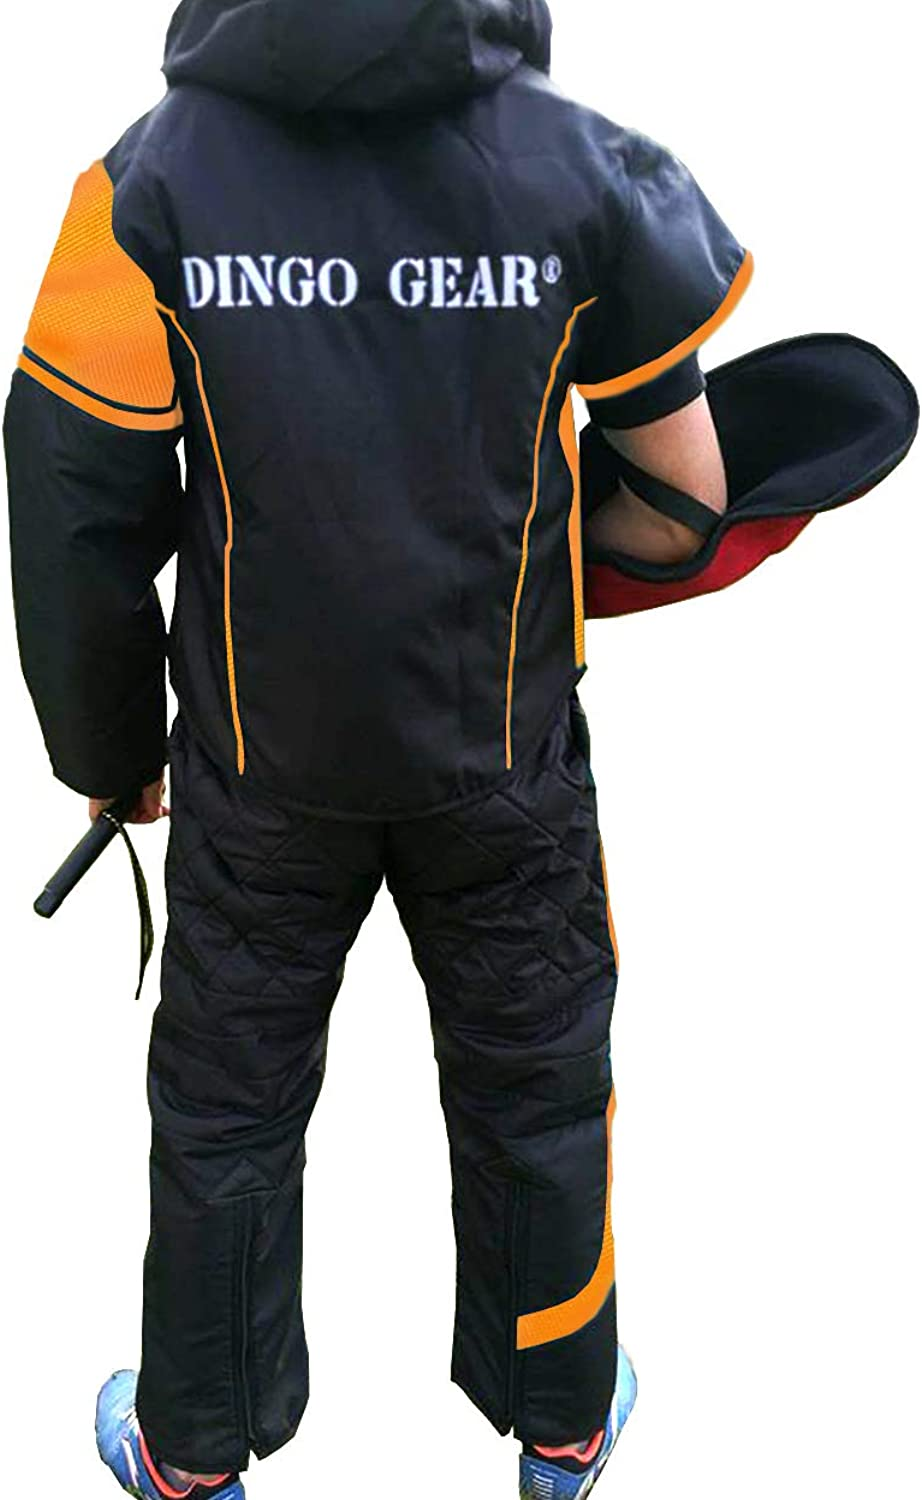 Dingo Gear Suit for Decoy or Handler for Training Dog Obedience, IPO and Dog Sports, Light Predection in Dog Training, Handmade, Sporty Design, Excellent Freedom of Movement S01041, XXL